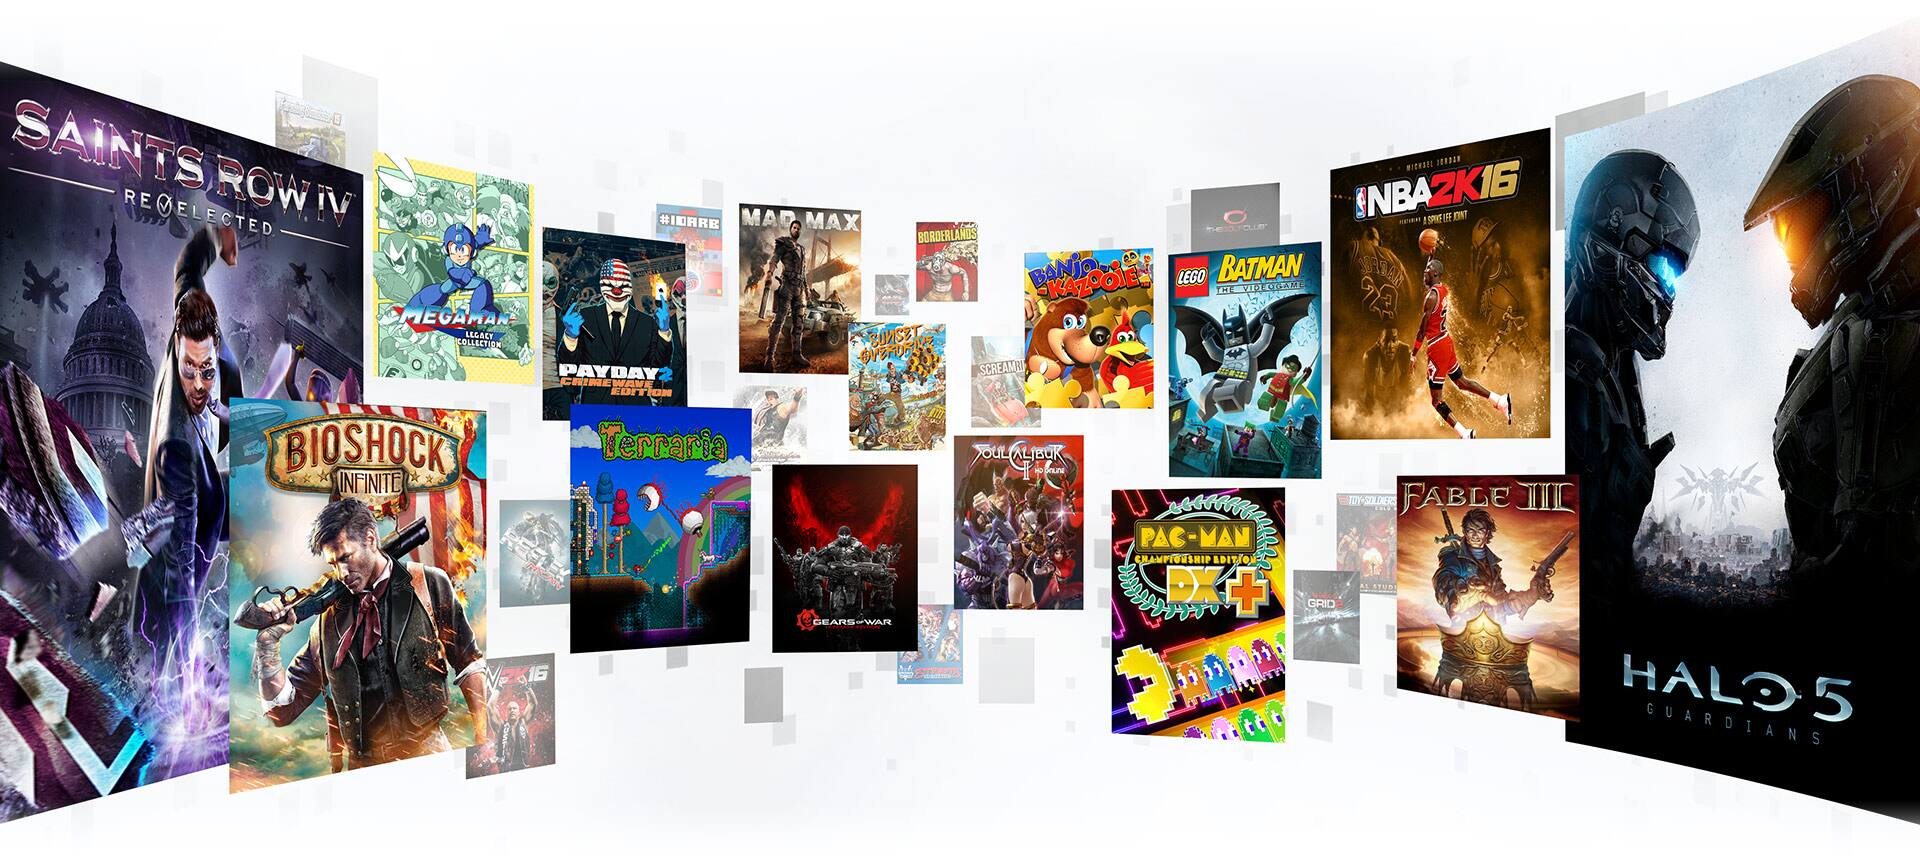 Play 1 - 5 Xbox One Game Pass Games for at least 30 minutes each and receive Mystery Gifts (Valued between $5 - $10)